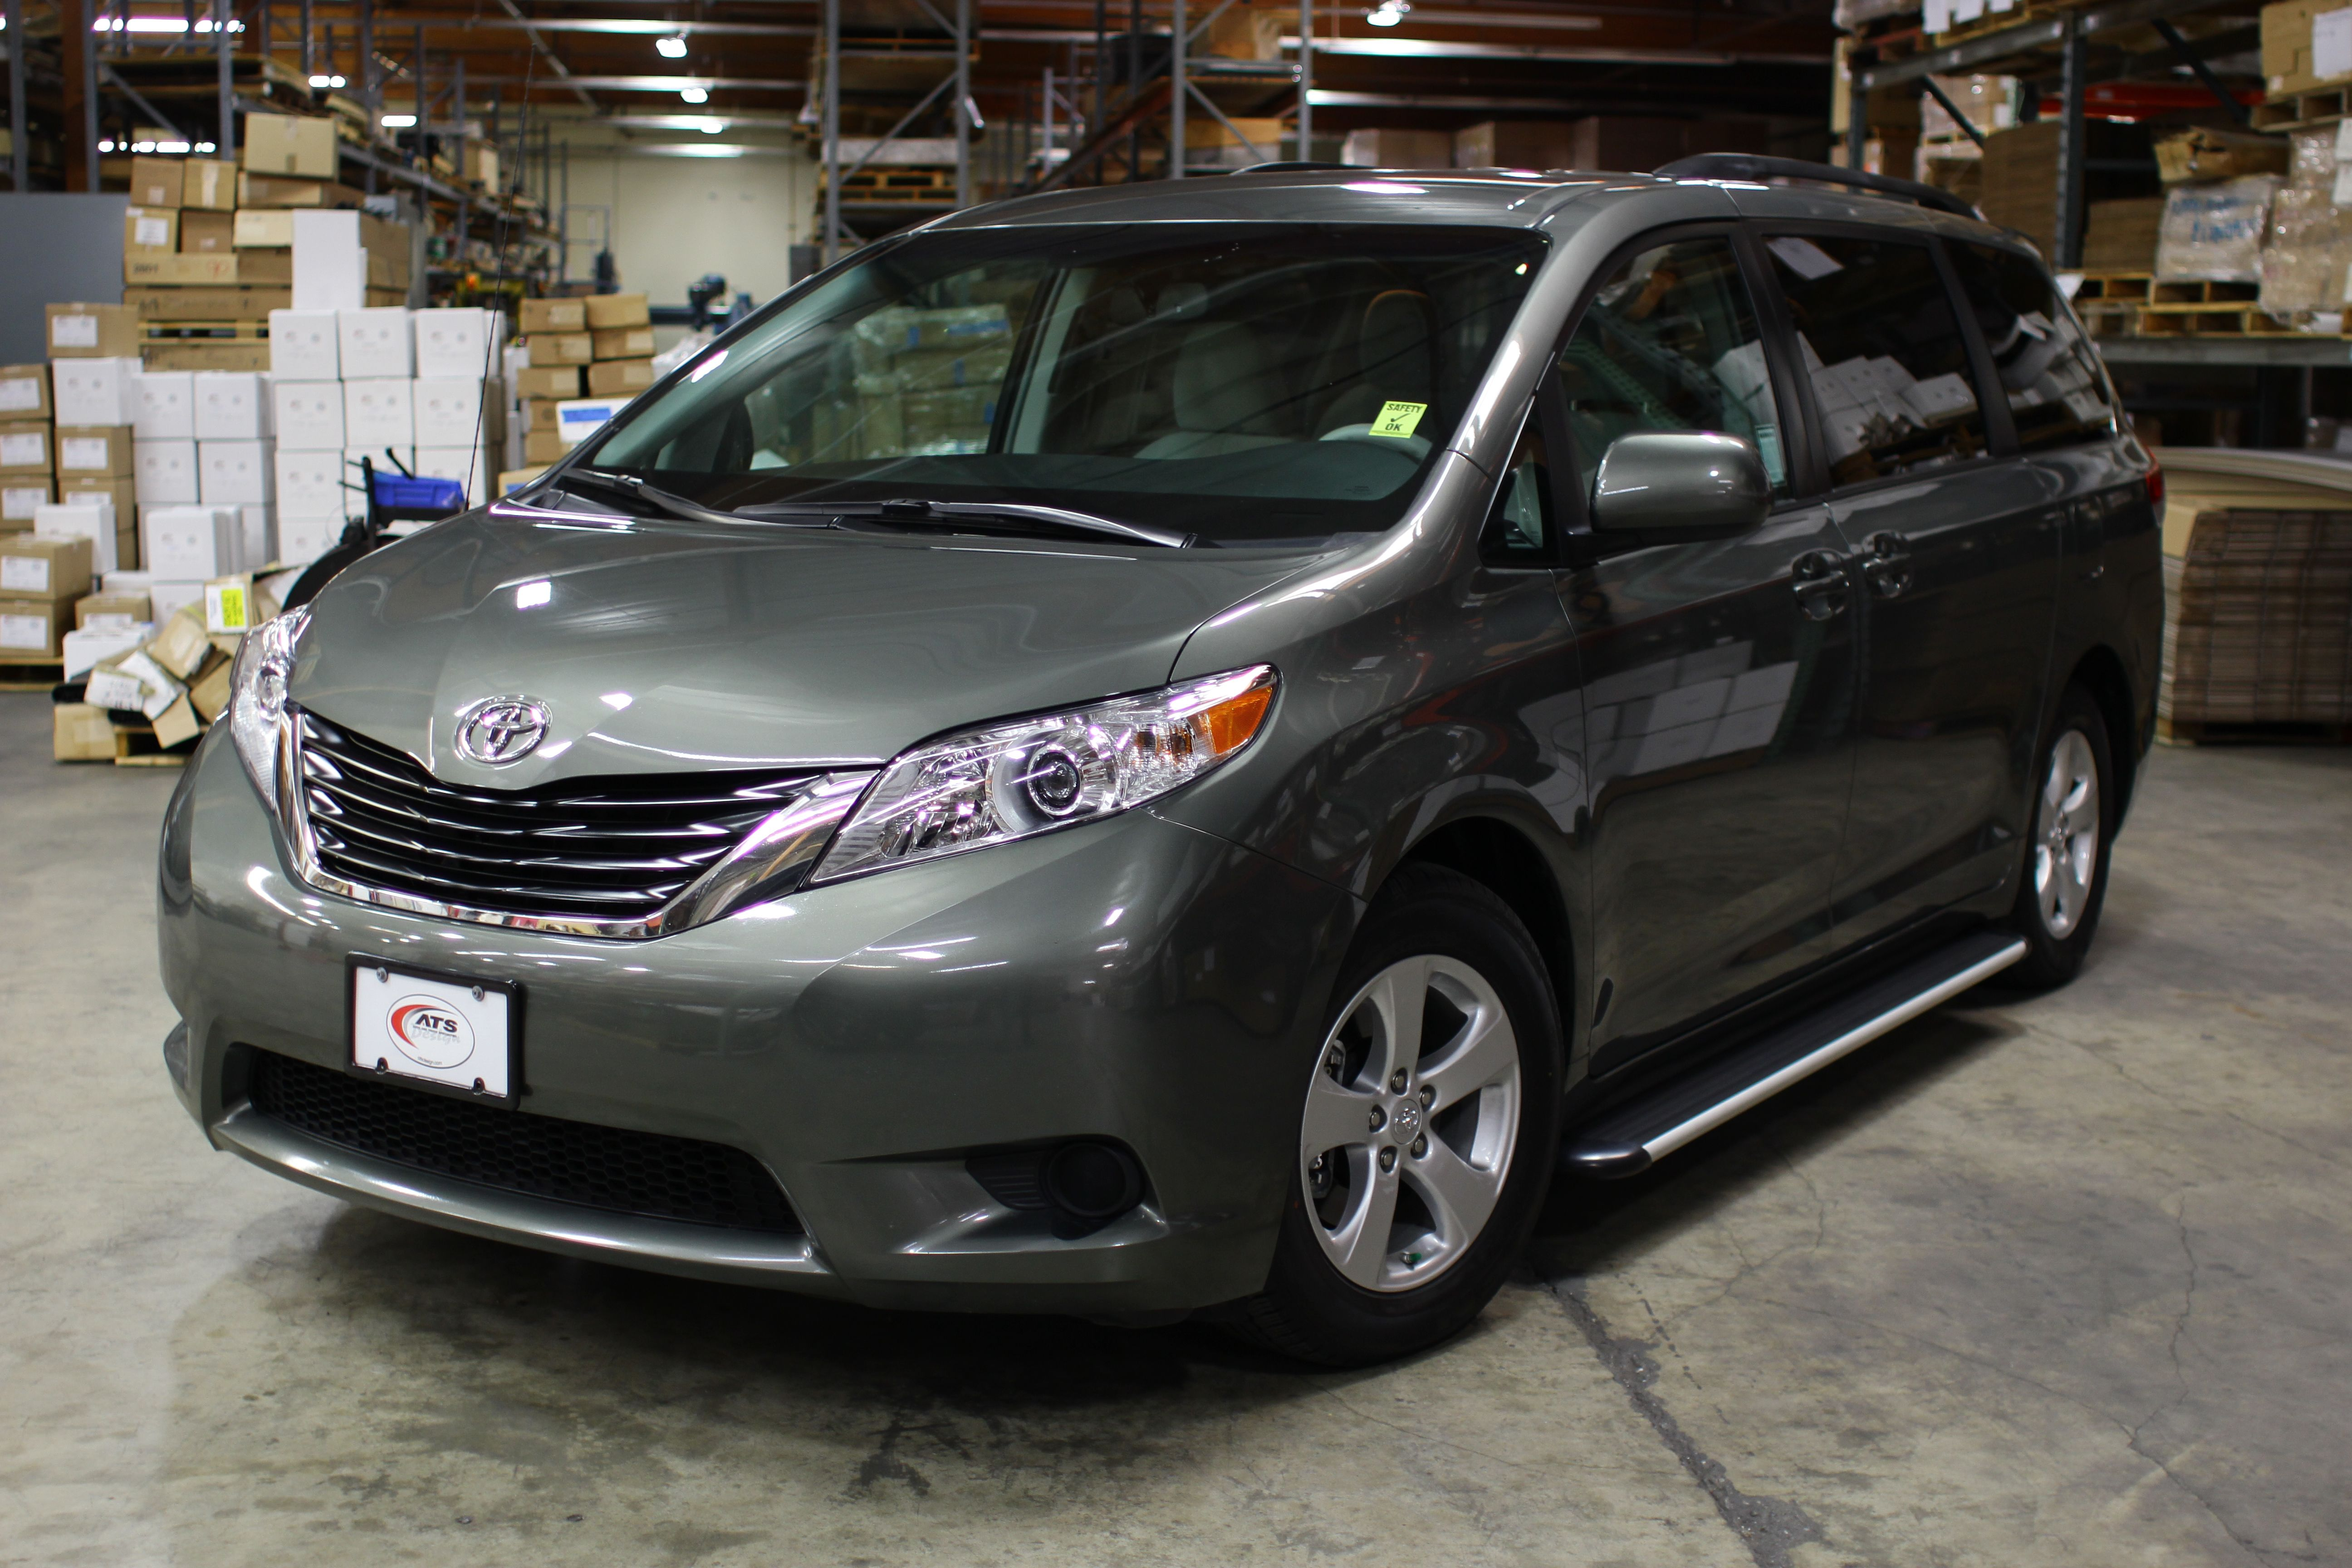 Ats Design Sl Series Running Boards On The 2012 Toyota Sienna See